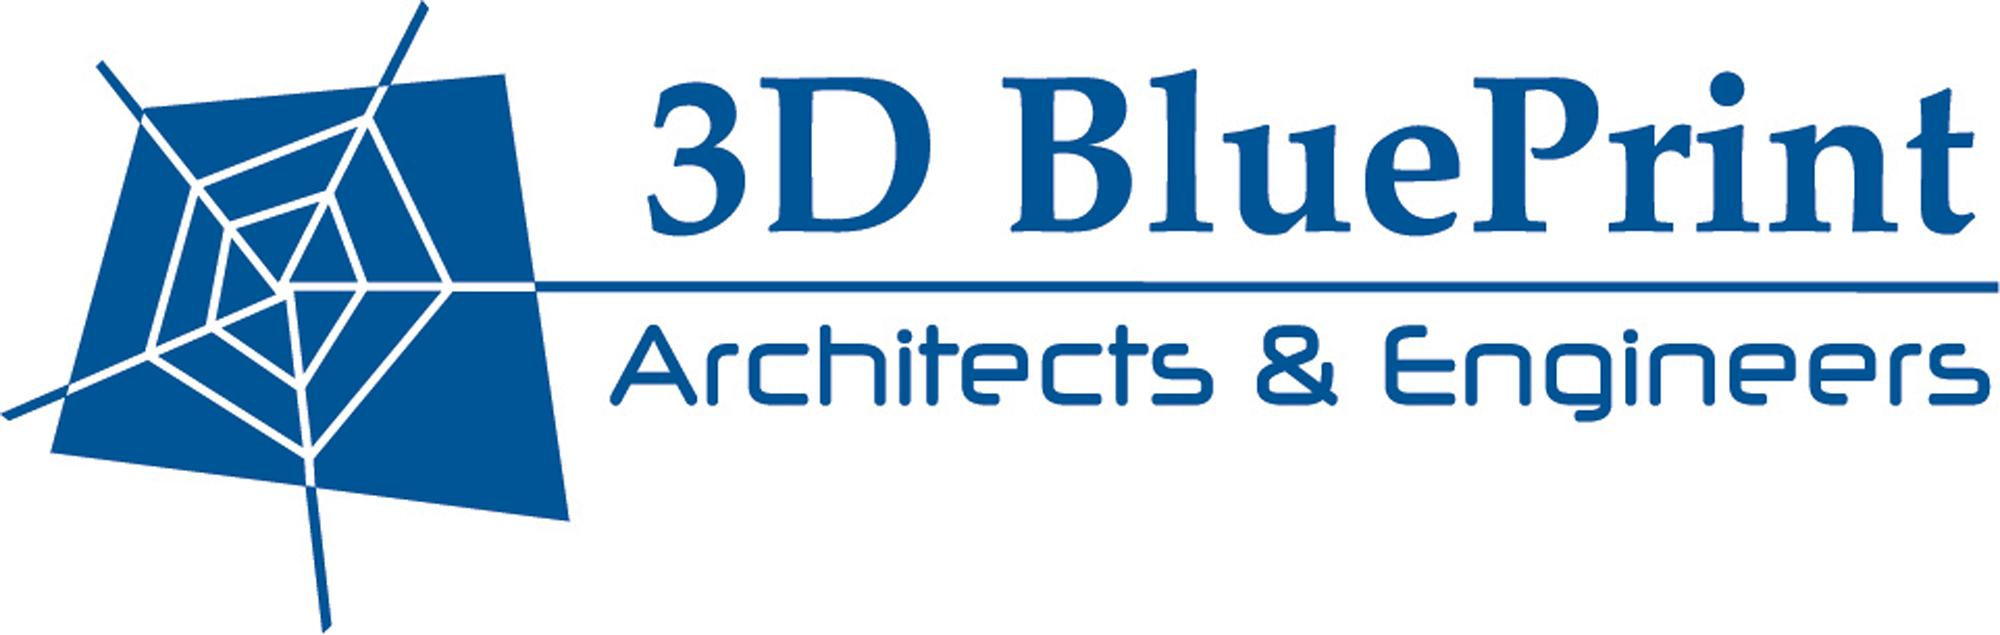 3D BluePrint Architect & Engineers